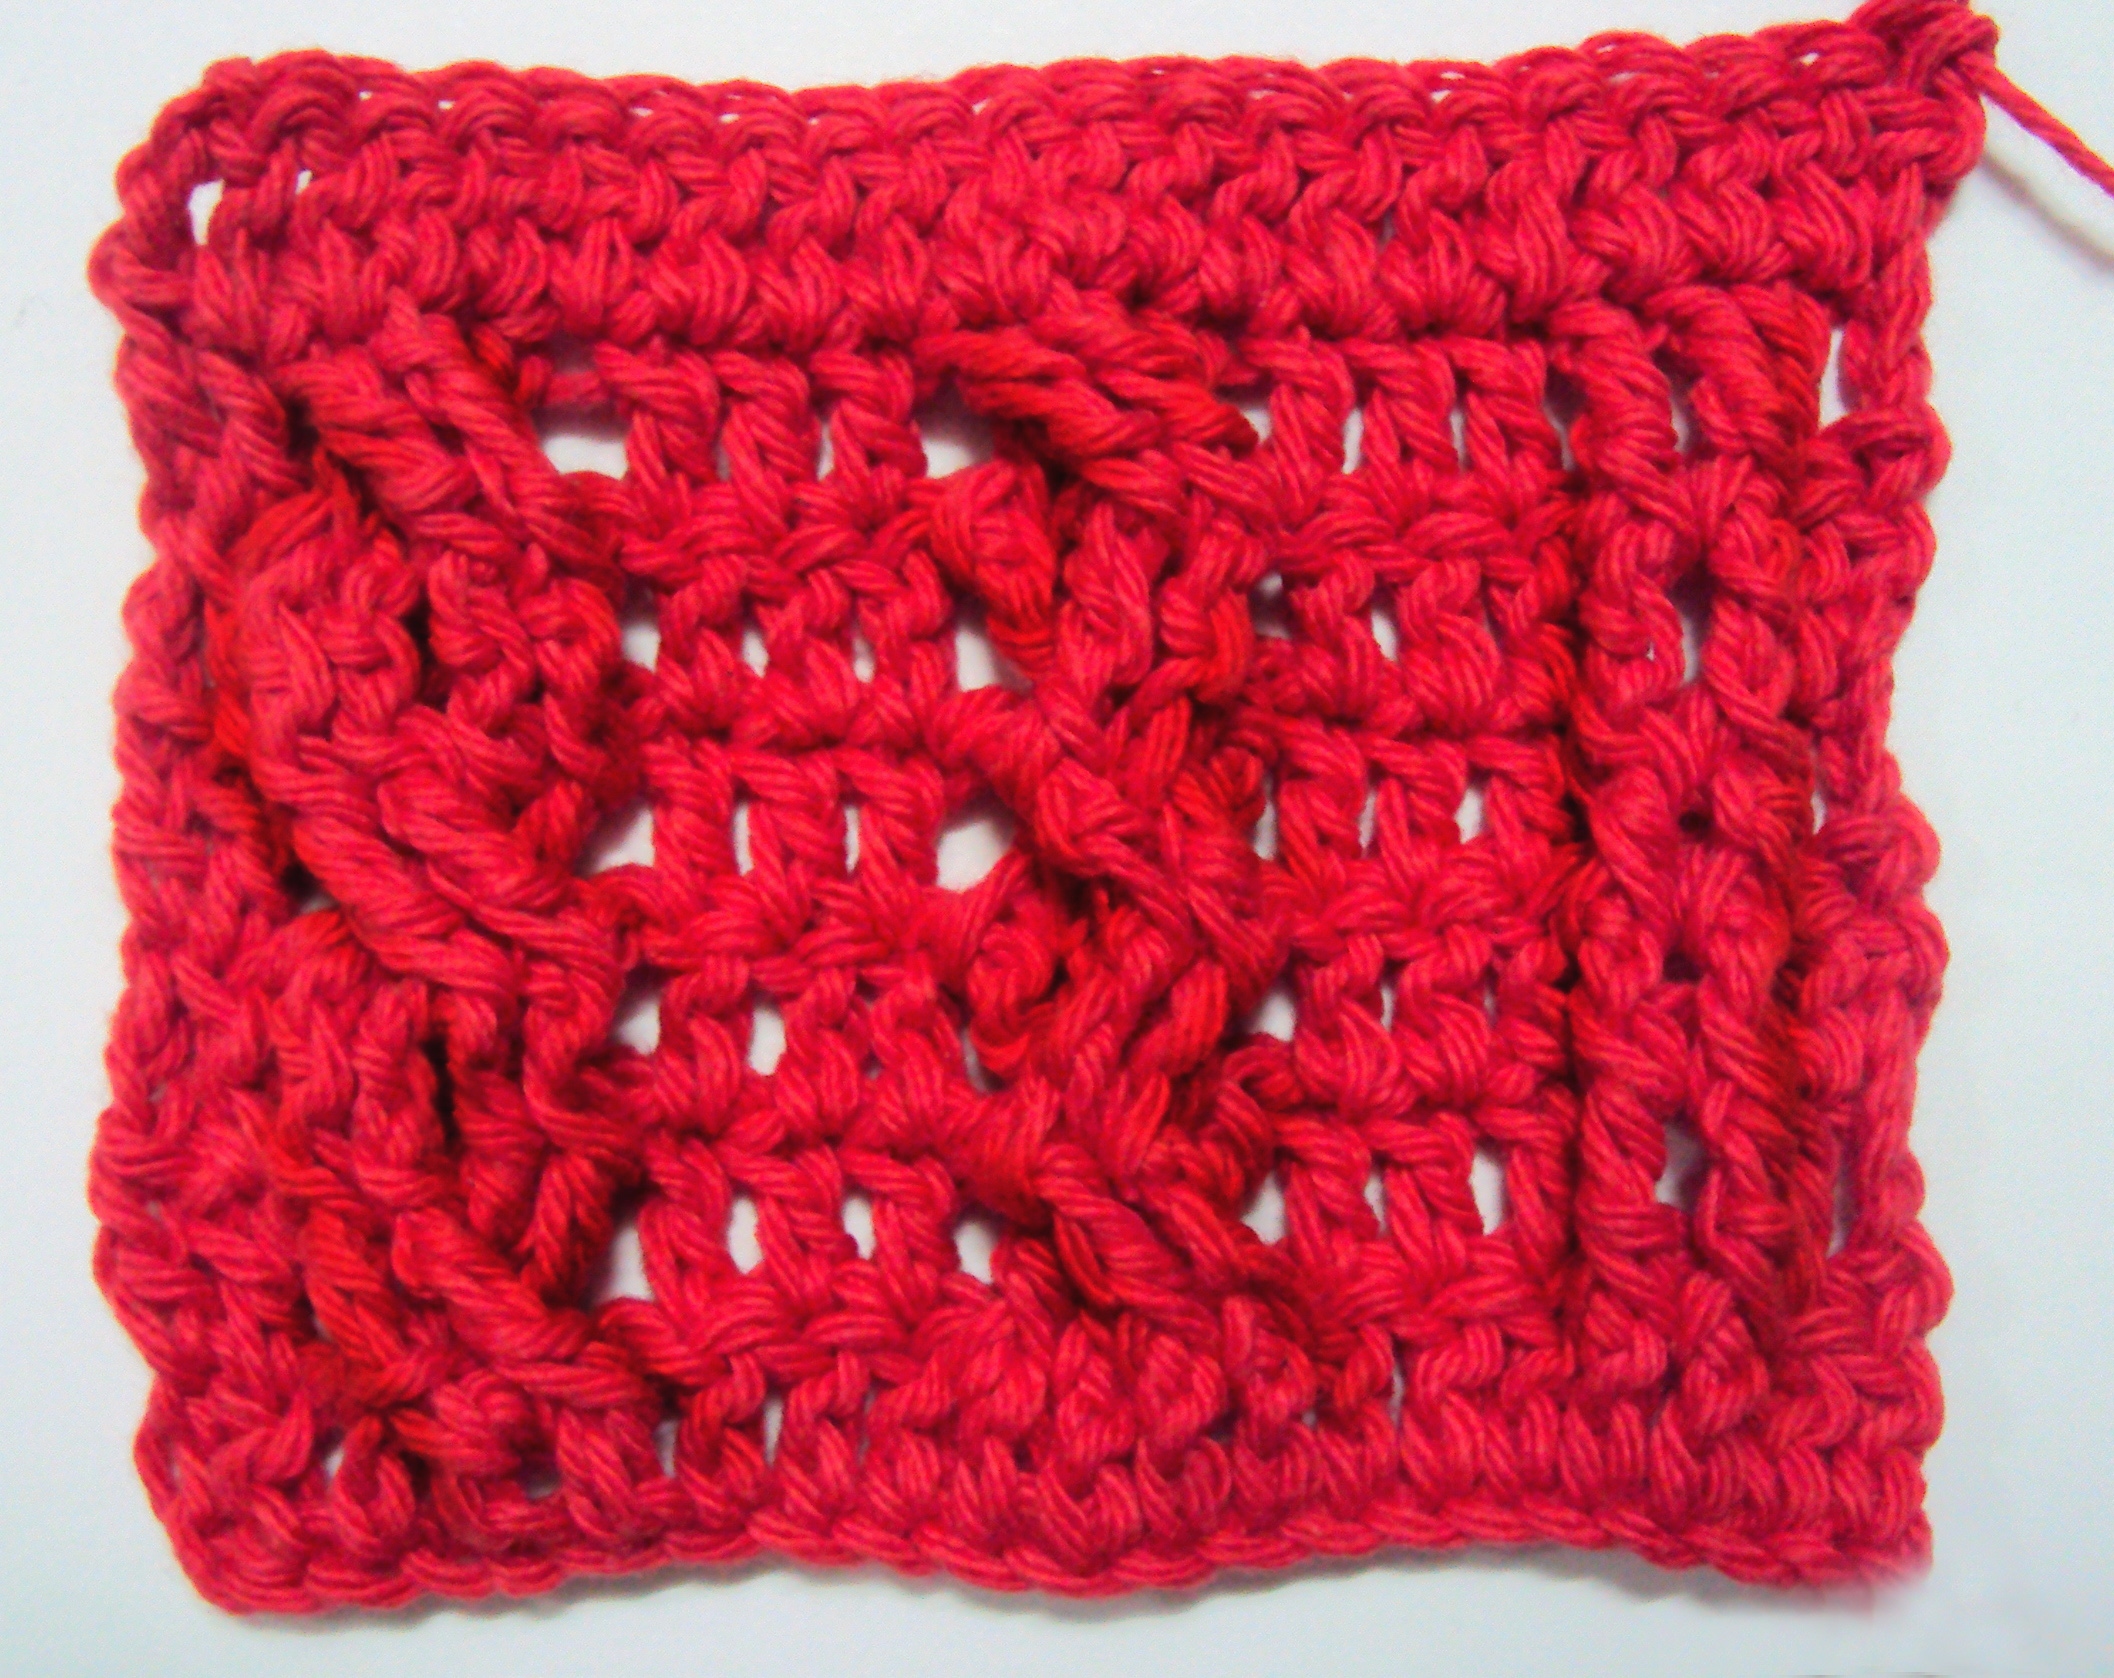 Crochet Stitches How To Videos : ... How to Crochet: Cable Stitches - Crochet Patterns, Tutorials and News